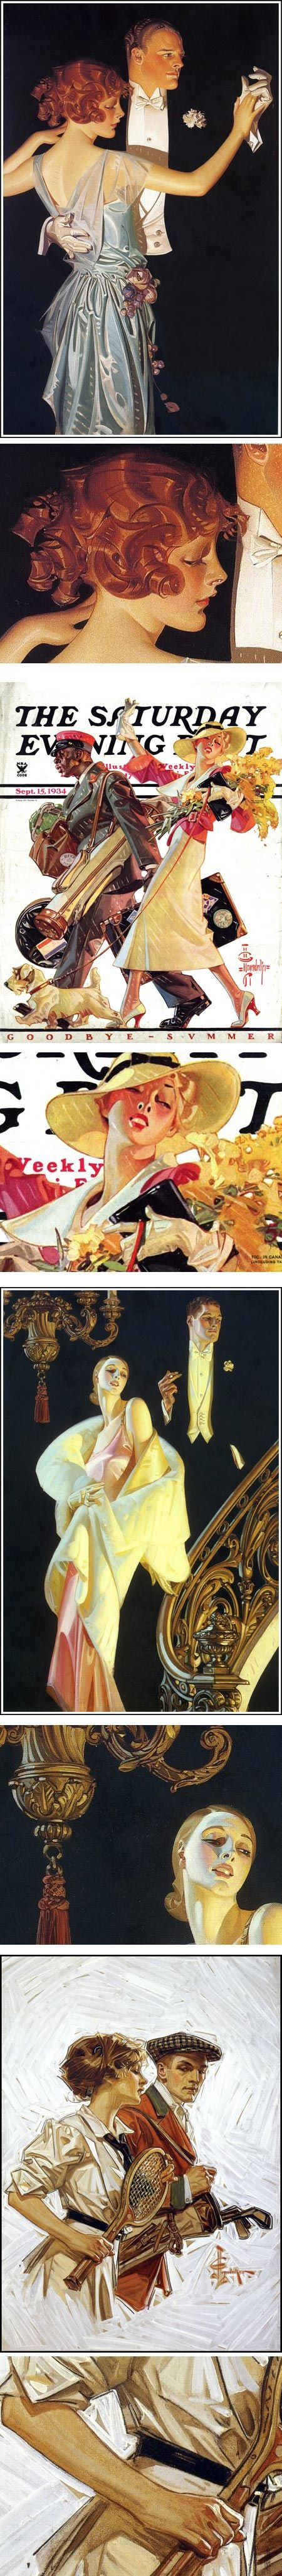 More J.C. Leyendecker from Leif Peng and Roger Reed